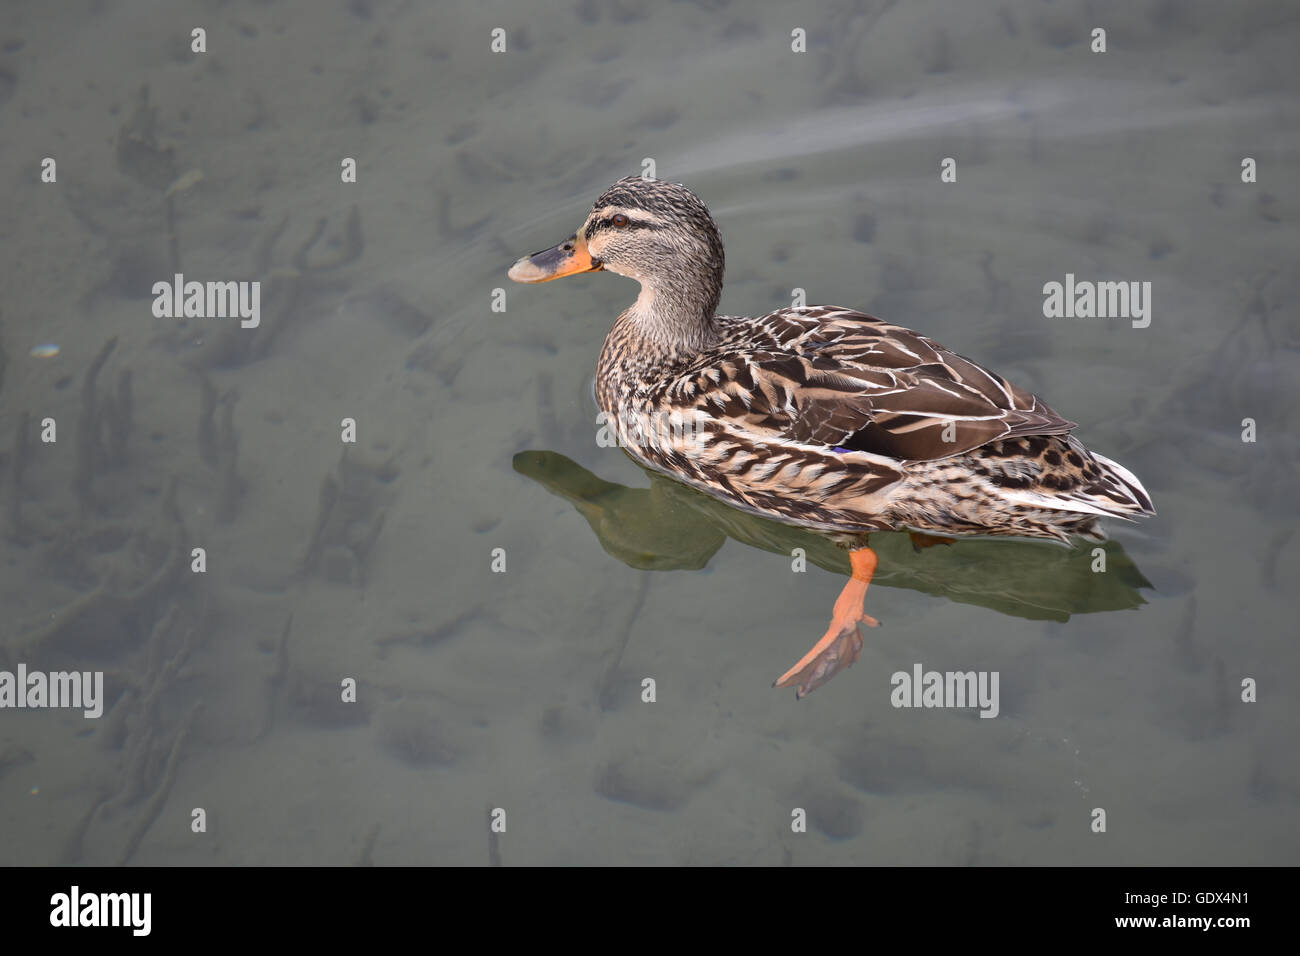 Female duck on calm water - Stock Image